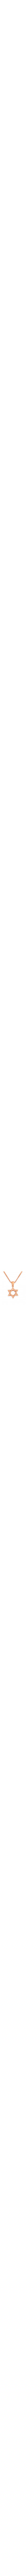 Rose Gold 14k Star of David Pendant